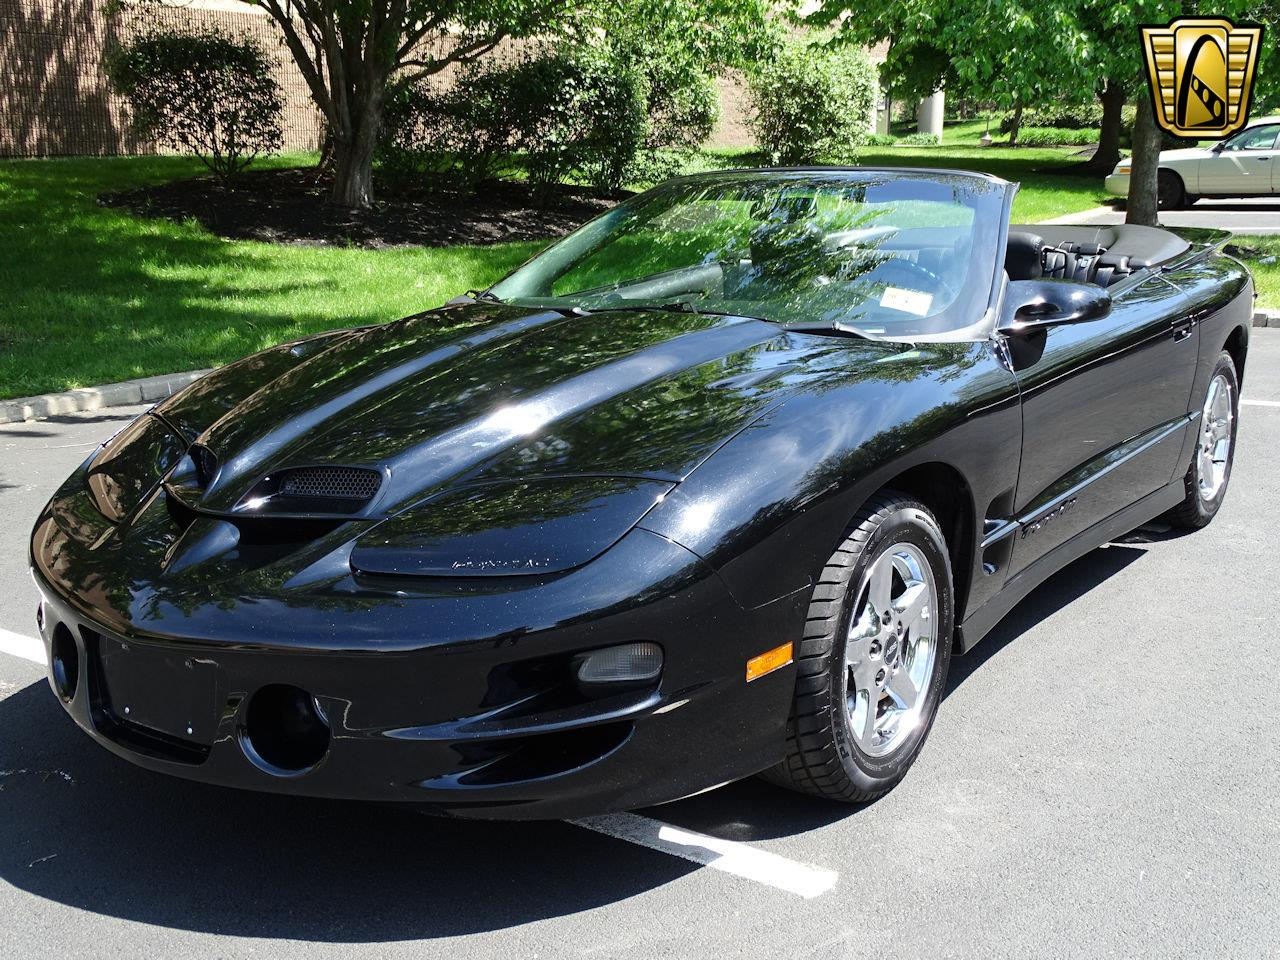 Large Picture of 2000 Pontiac Firebird located in New Jersey - $17,595.00 Offered by Gateway Classic Cars - Philadelphia - M5ID